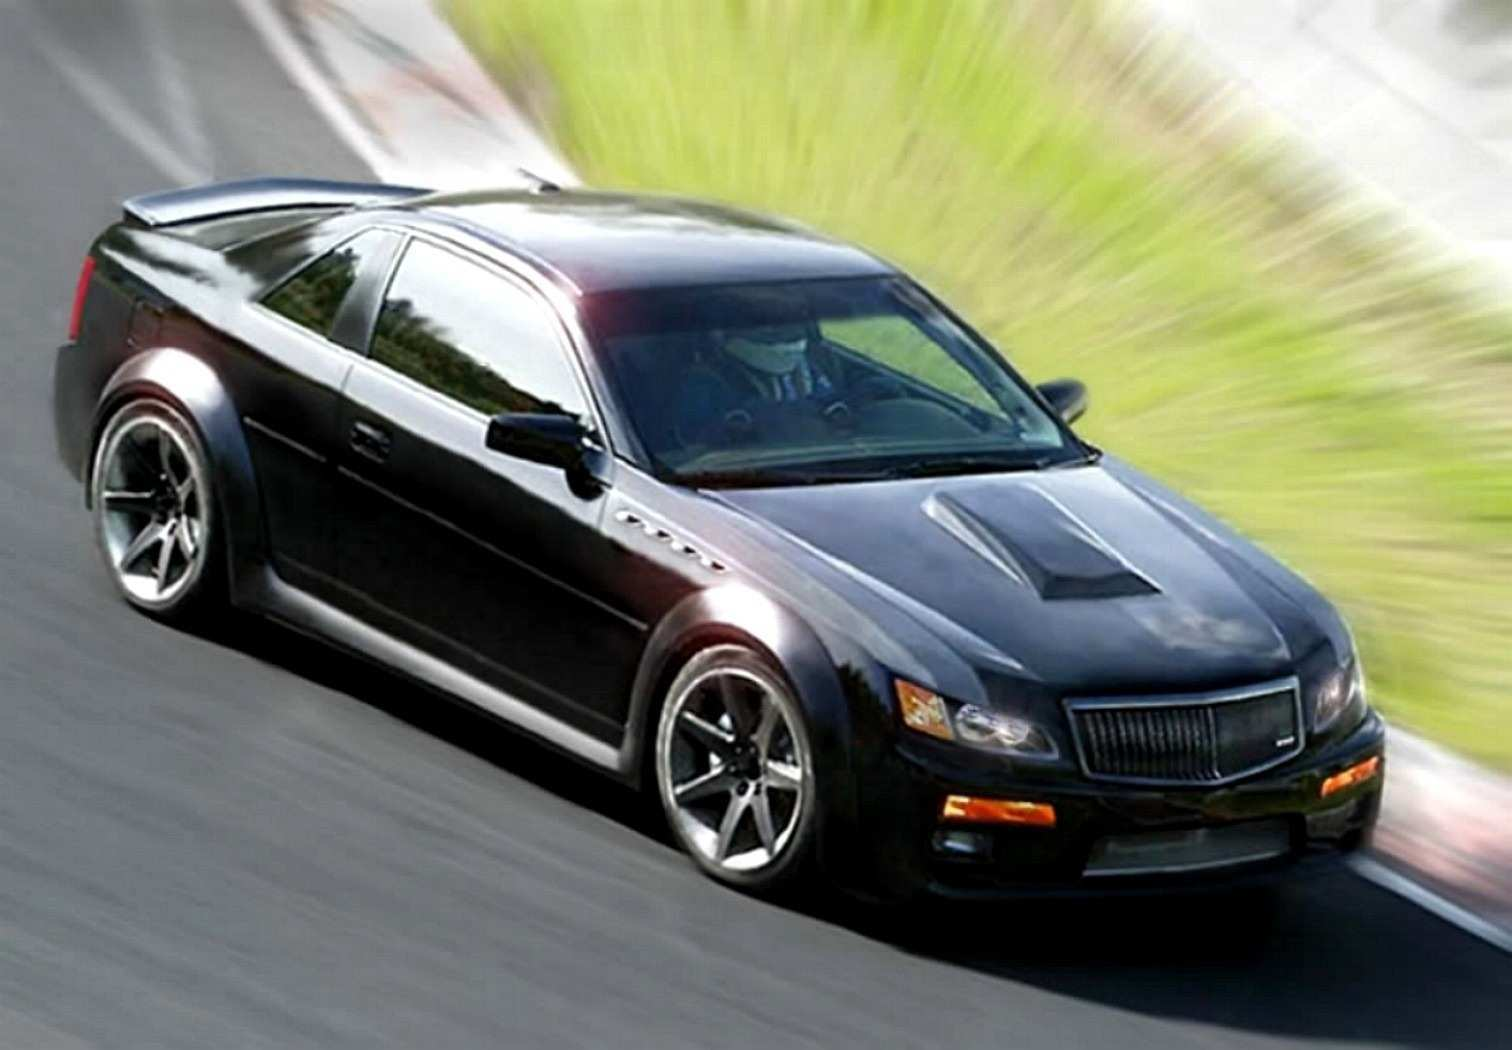 56 A 2019 Buick Grand National Gnx Pictures | Review Cars 2020